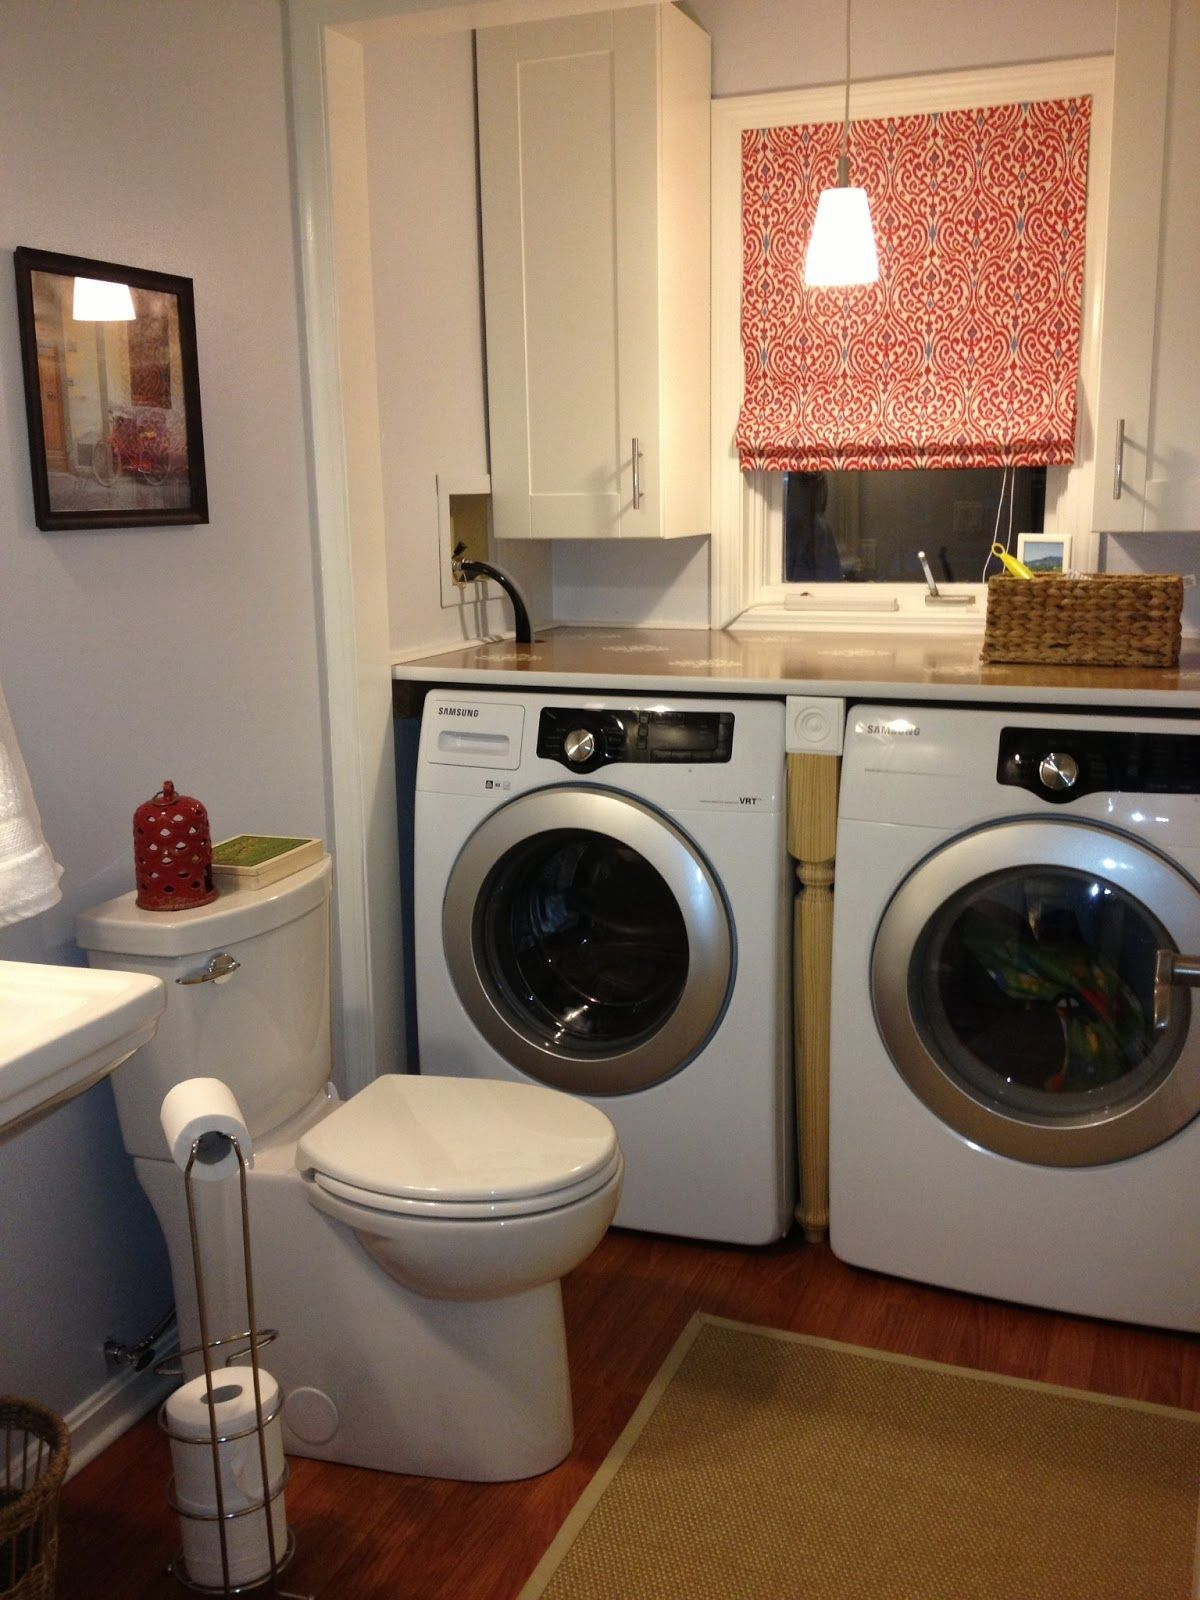 Vintage Bad 20 Beautiful Vintage Laundry Room Decor Ideas Design For Rustic